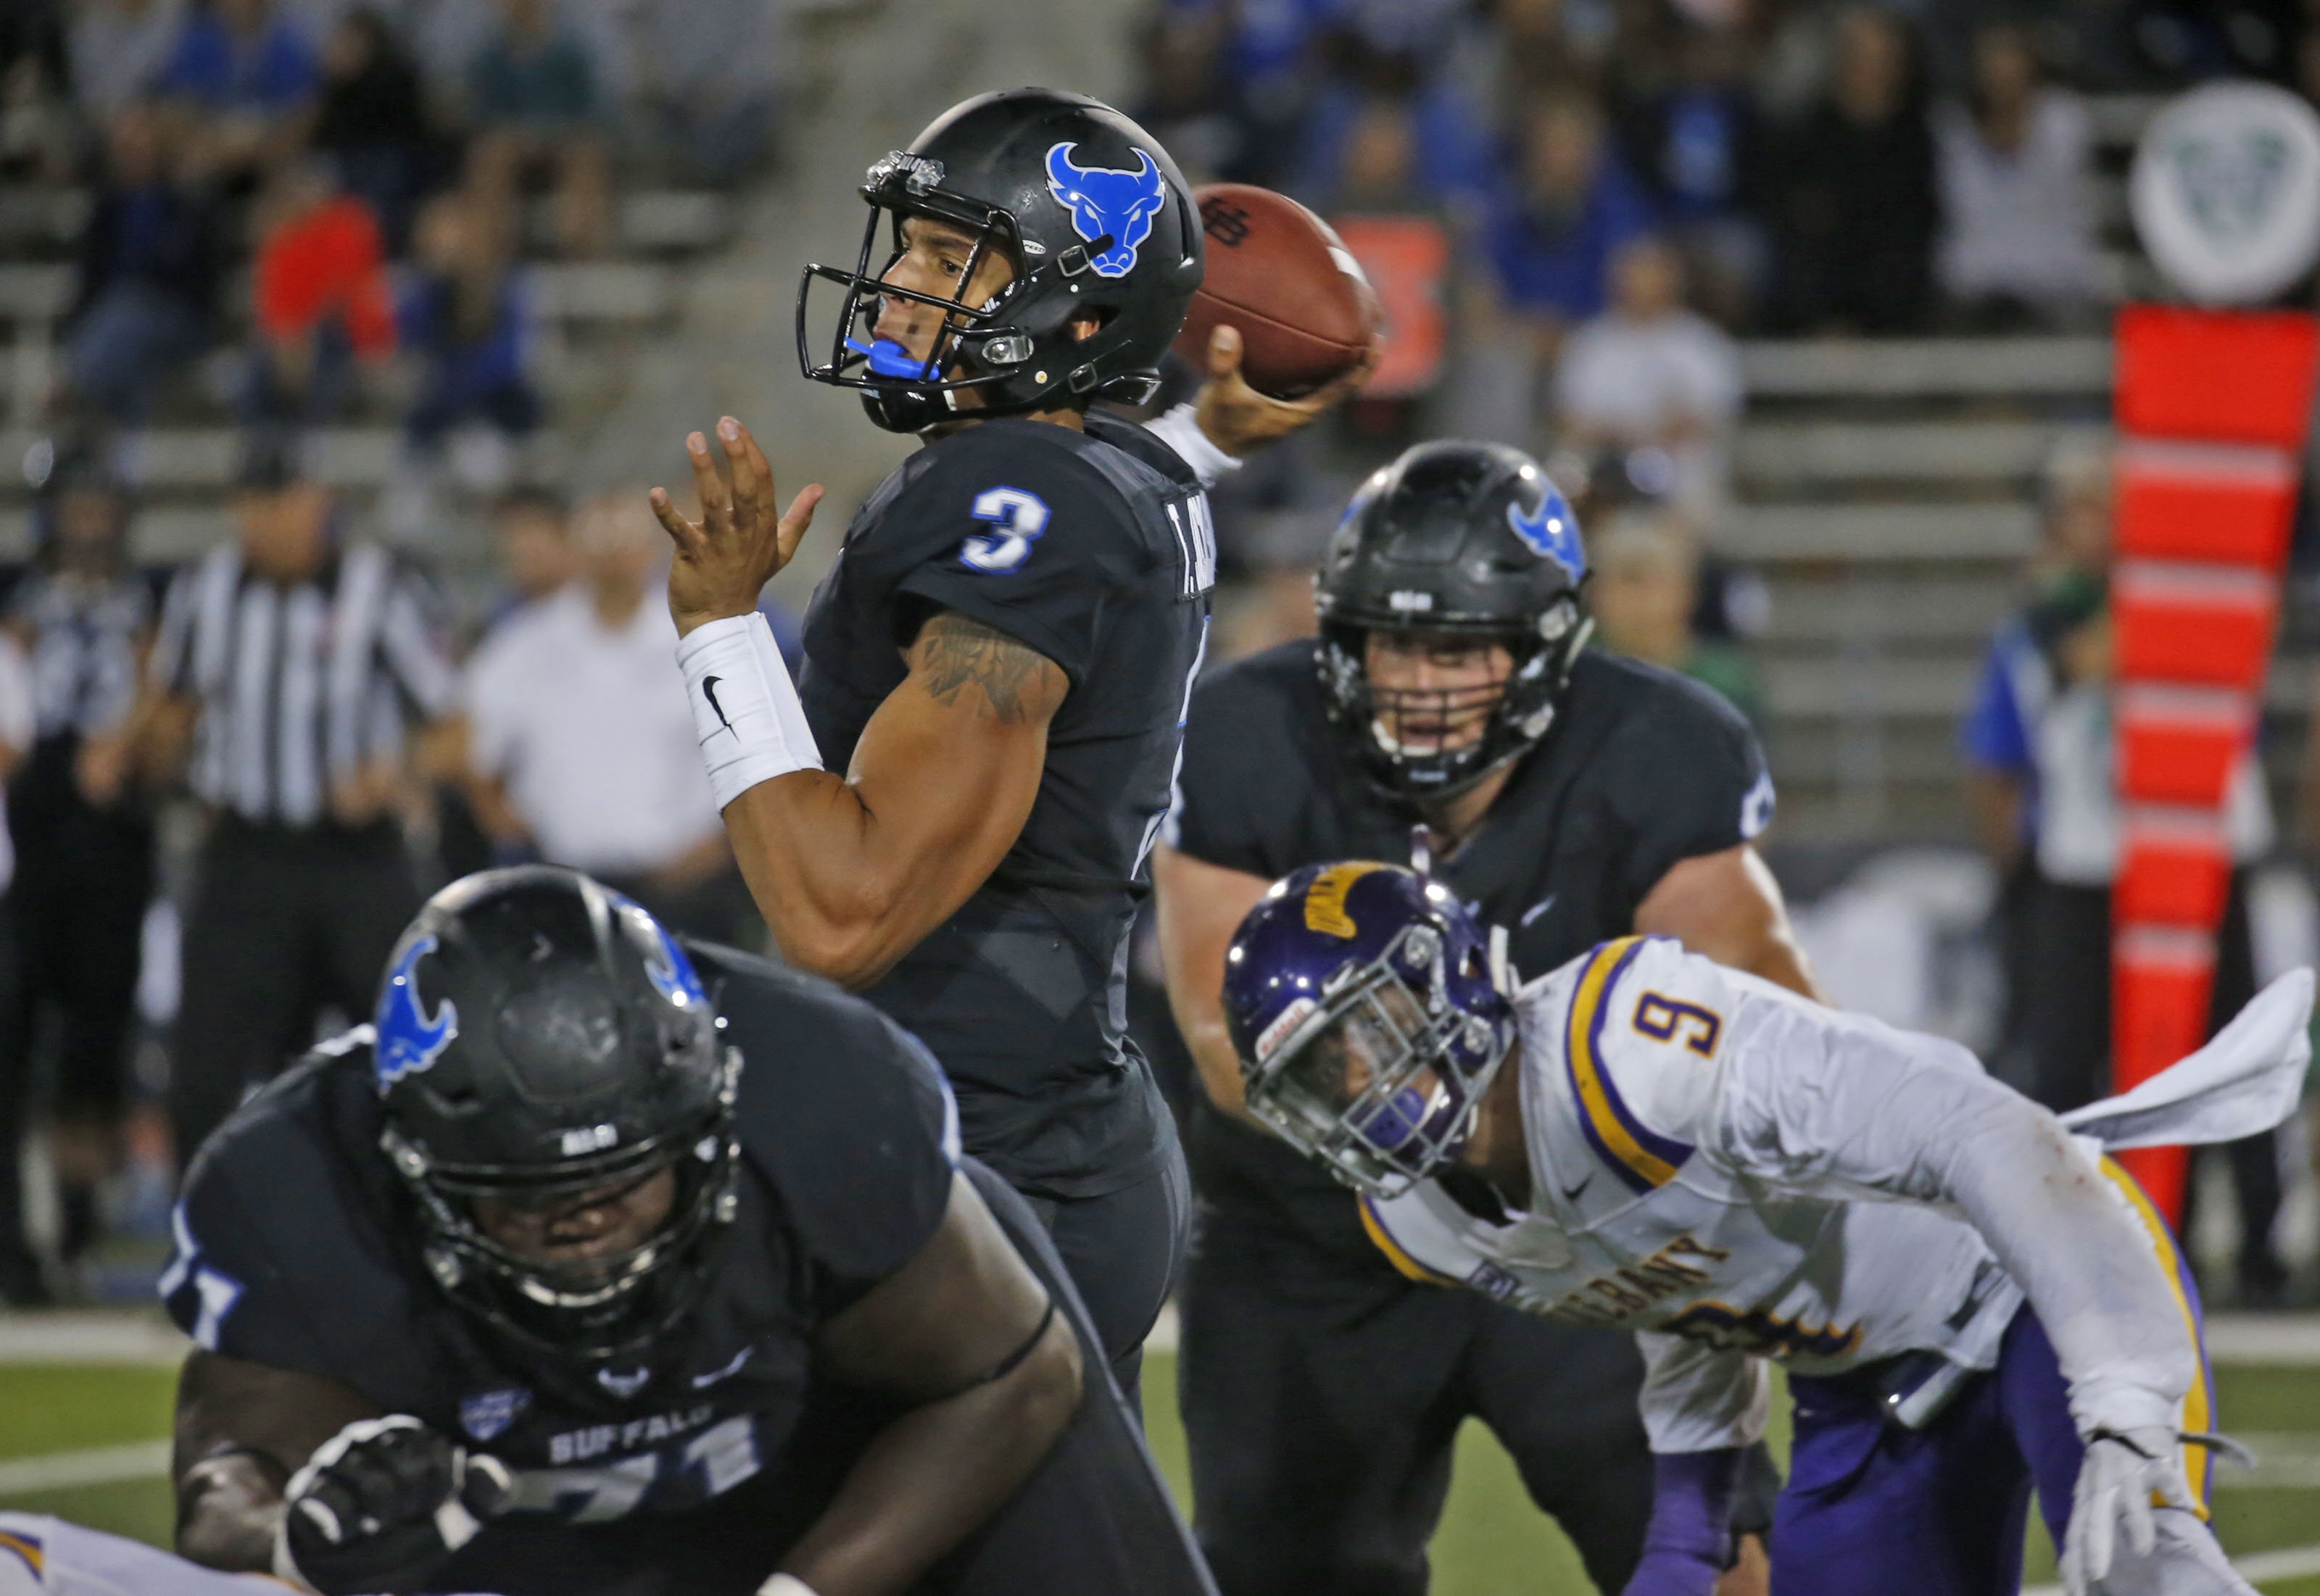 UB redshirt freshman quarterback Tyree Jackson completed 14 of his 25 passes for 125 yards in the Bulls' season-opening loss to Albany.